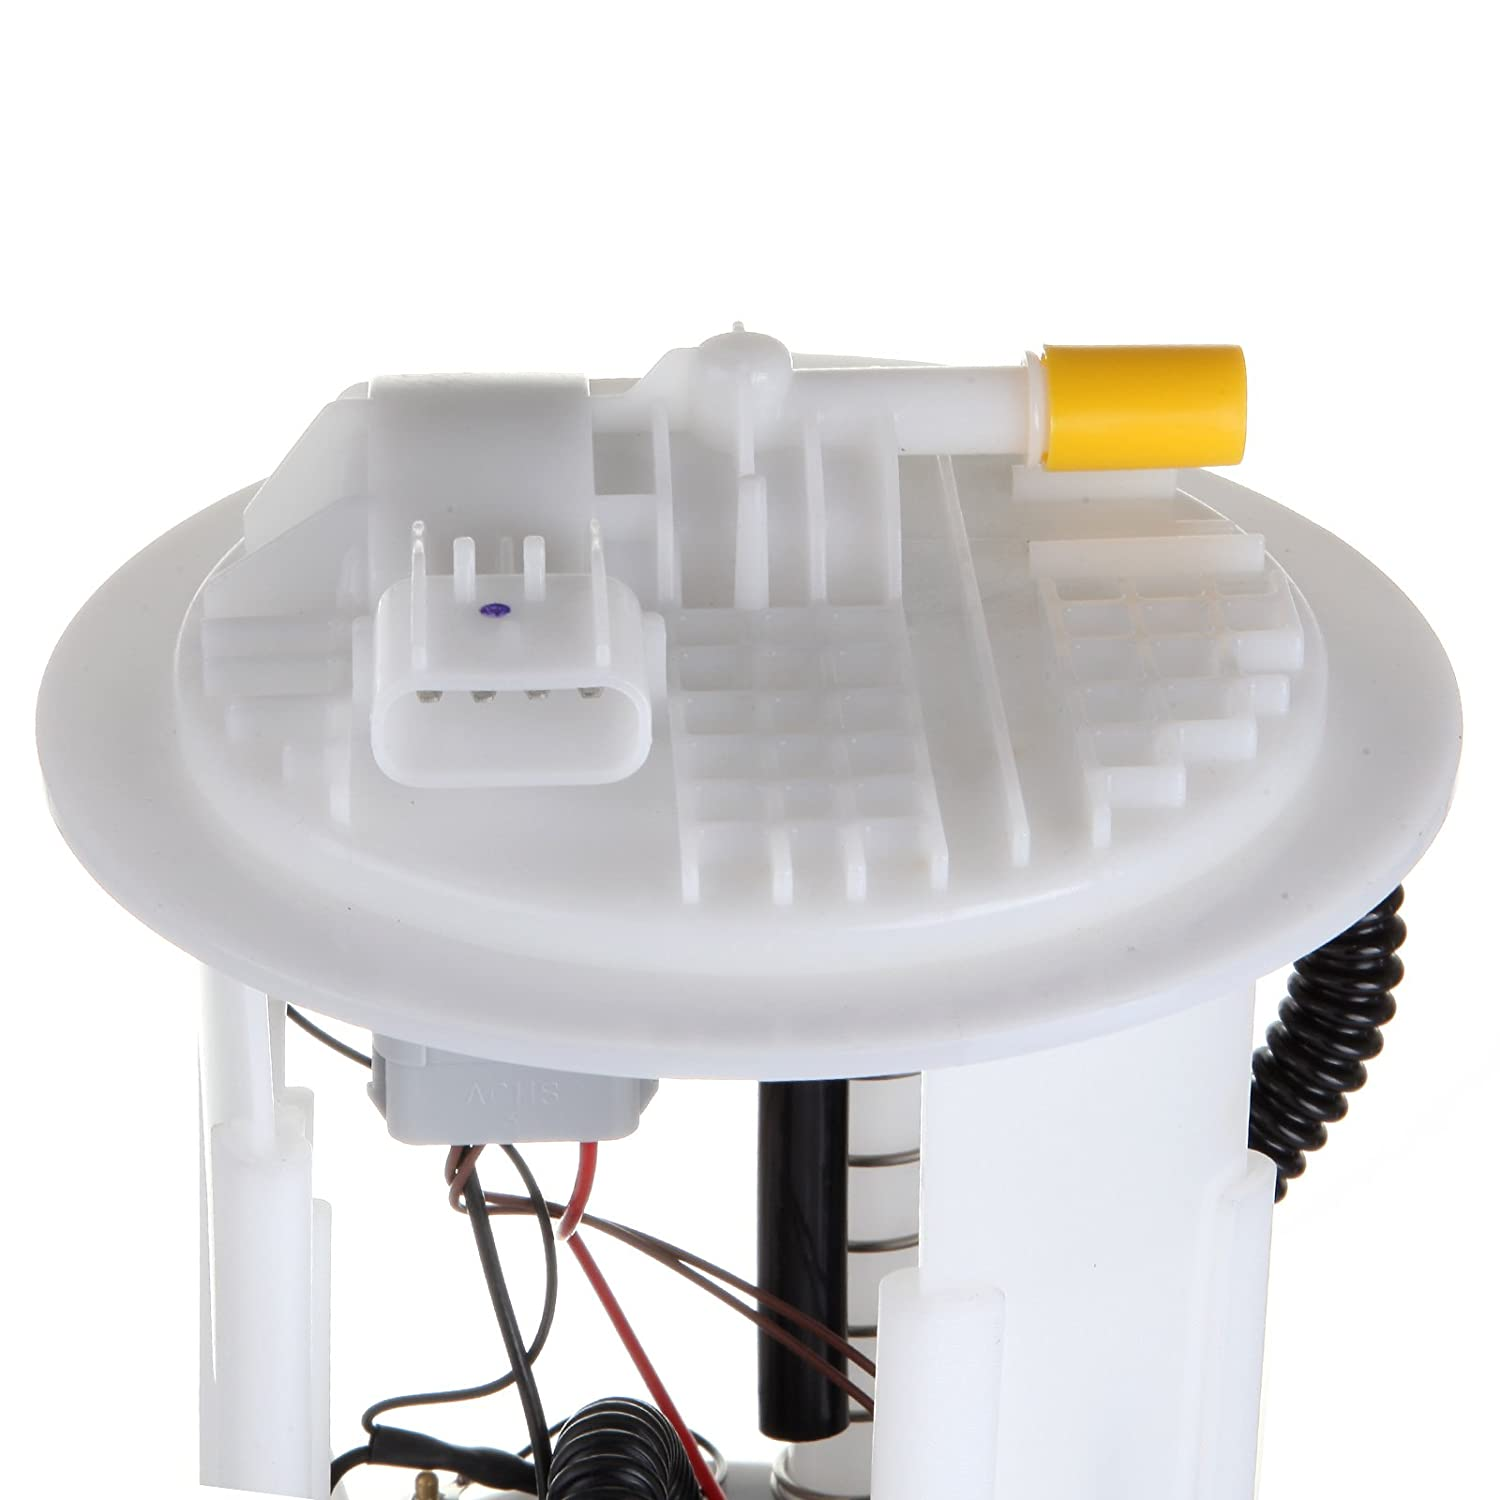 Eccpp New Fuel Pump Assembly For 06 10 Jeep Commander 05 2006 Filter Location Grand Cherokee E7197m Automotive